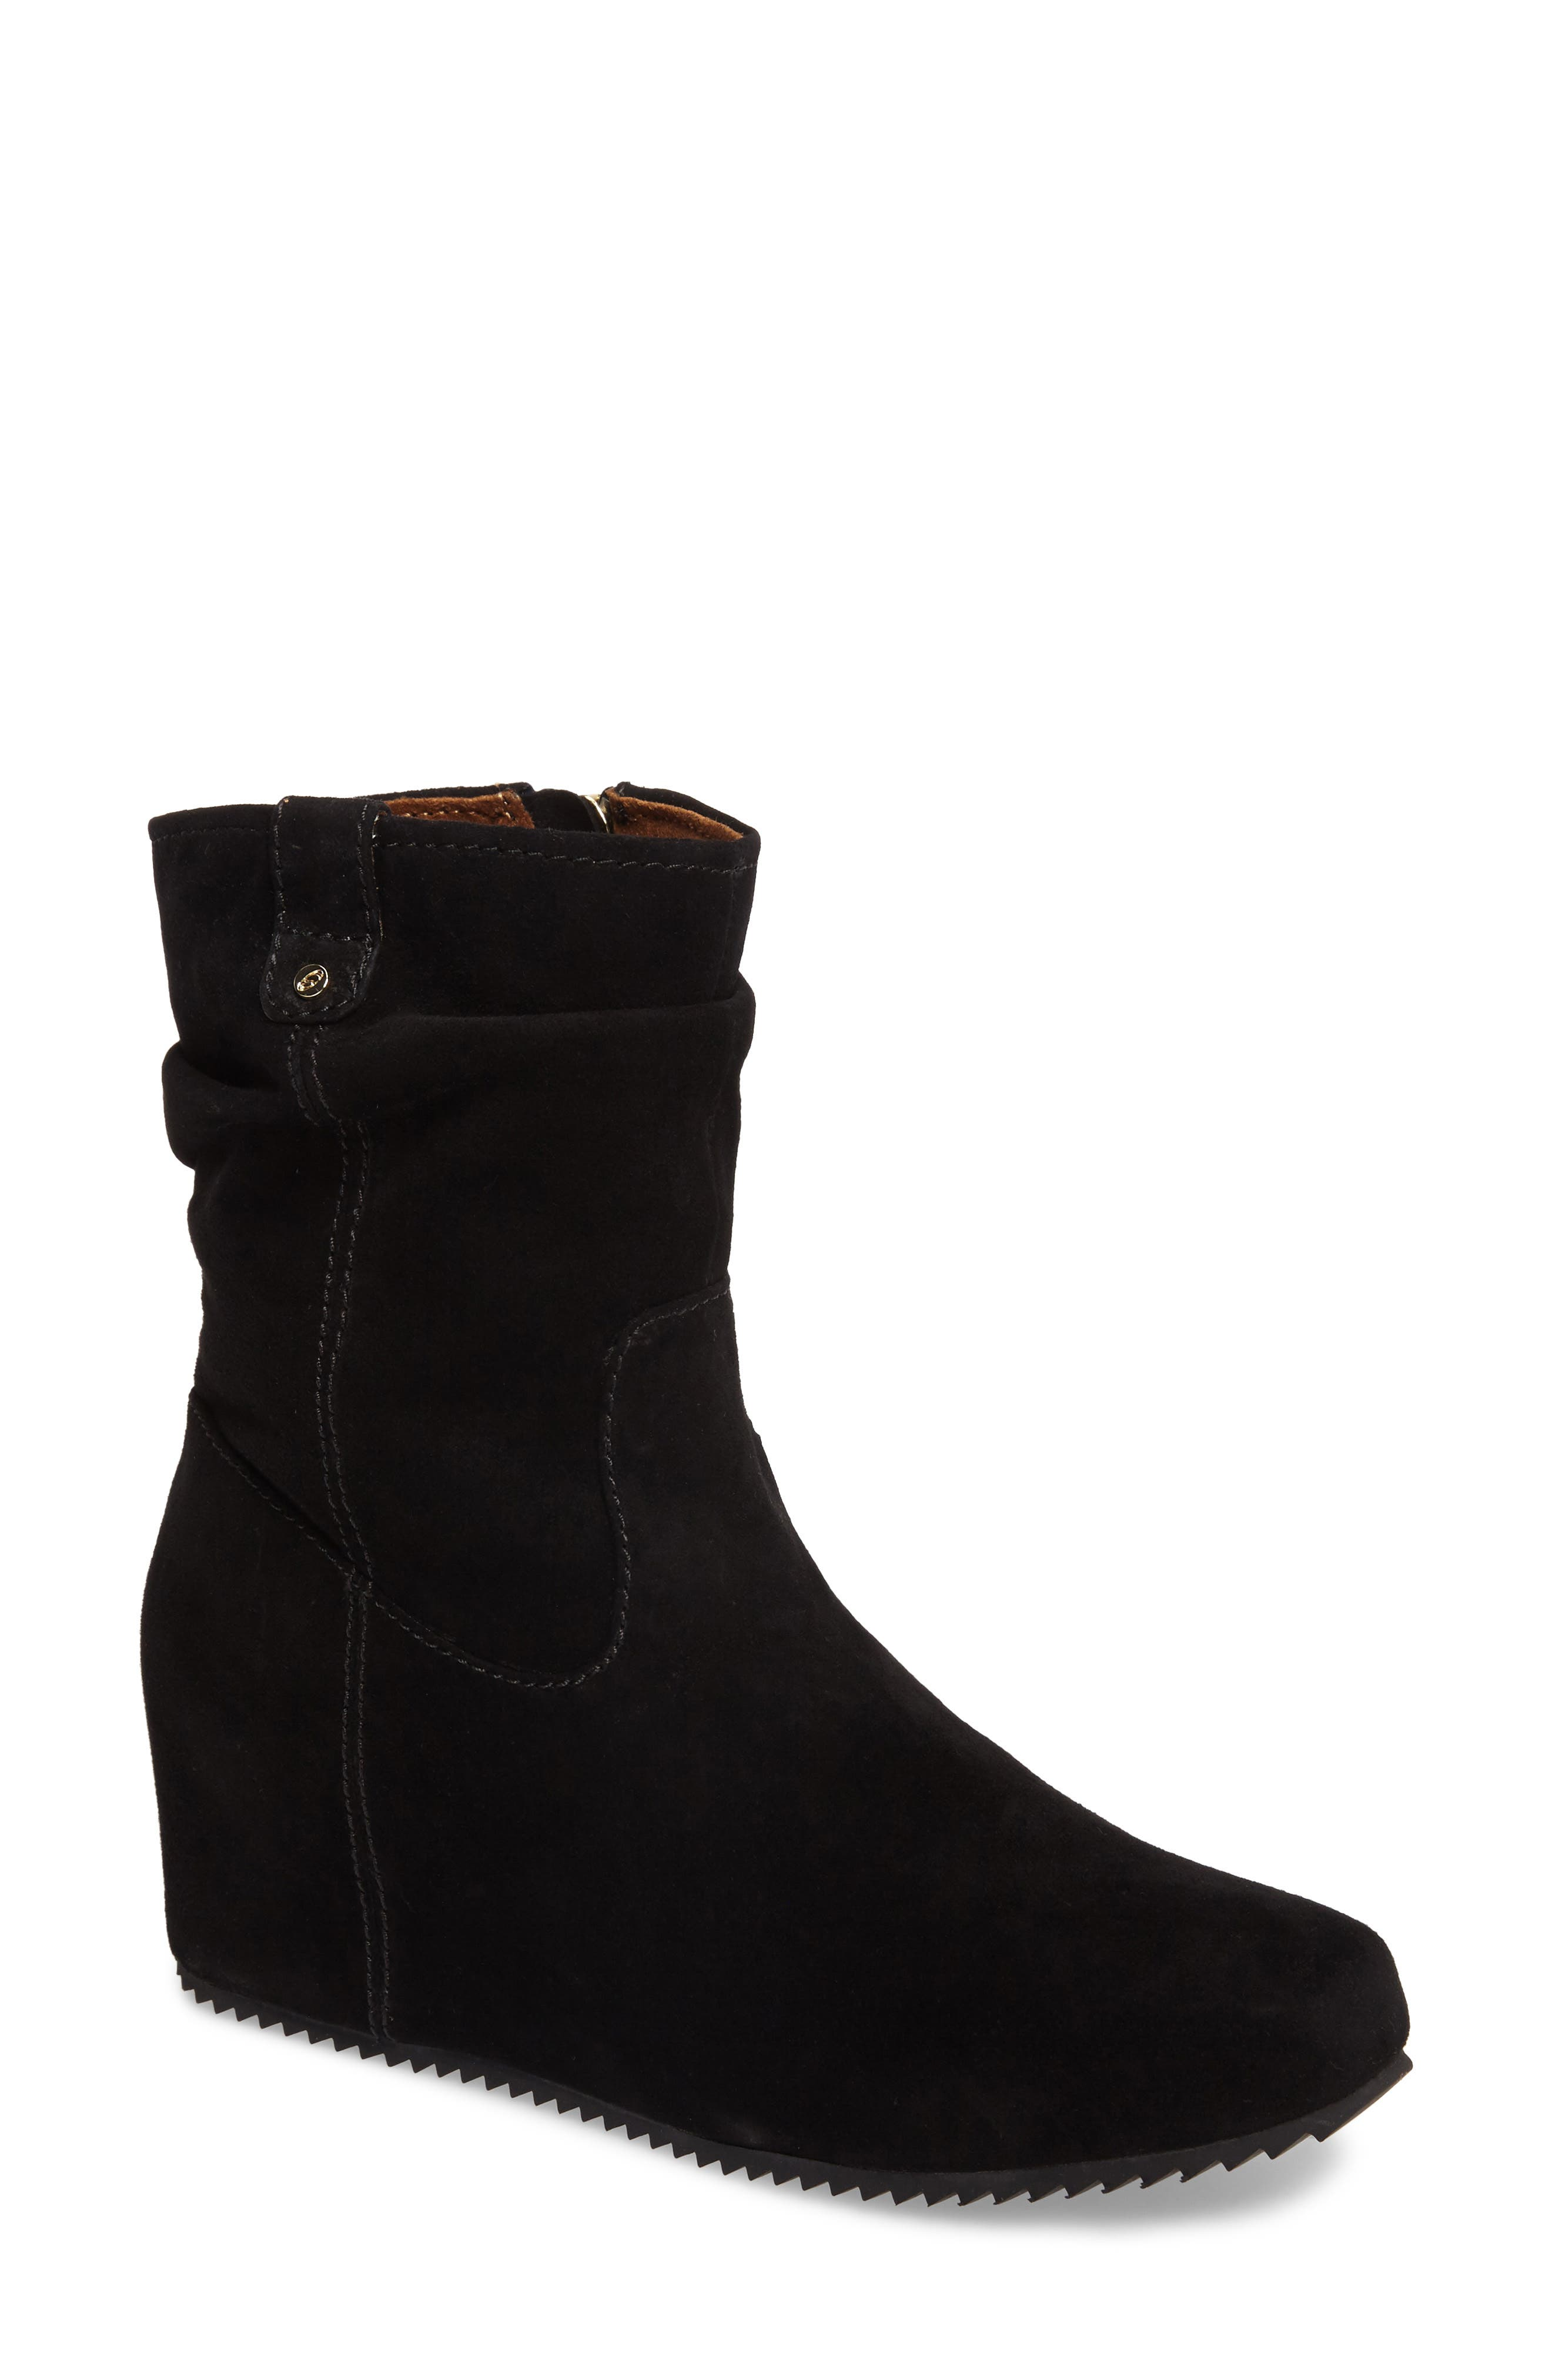 Jade Wedge Bootie,                             Main thumbnail 1, color,                             001